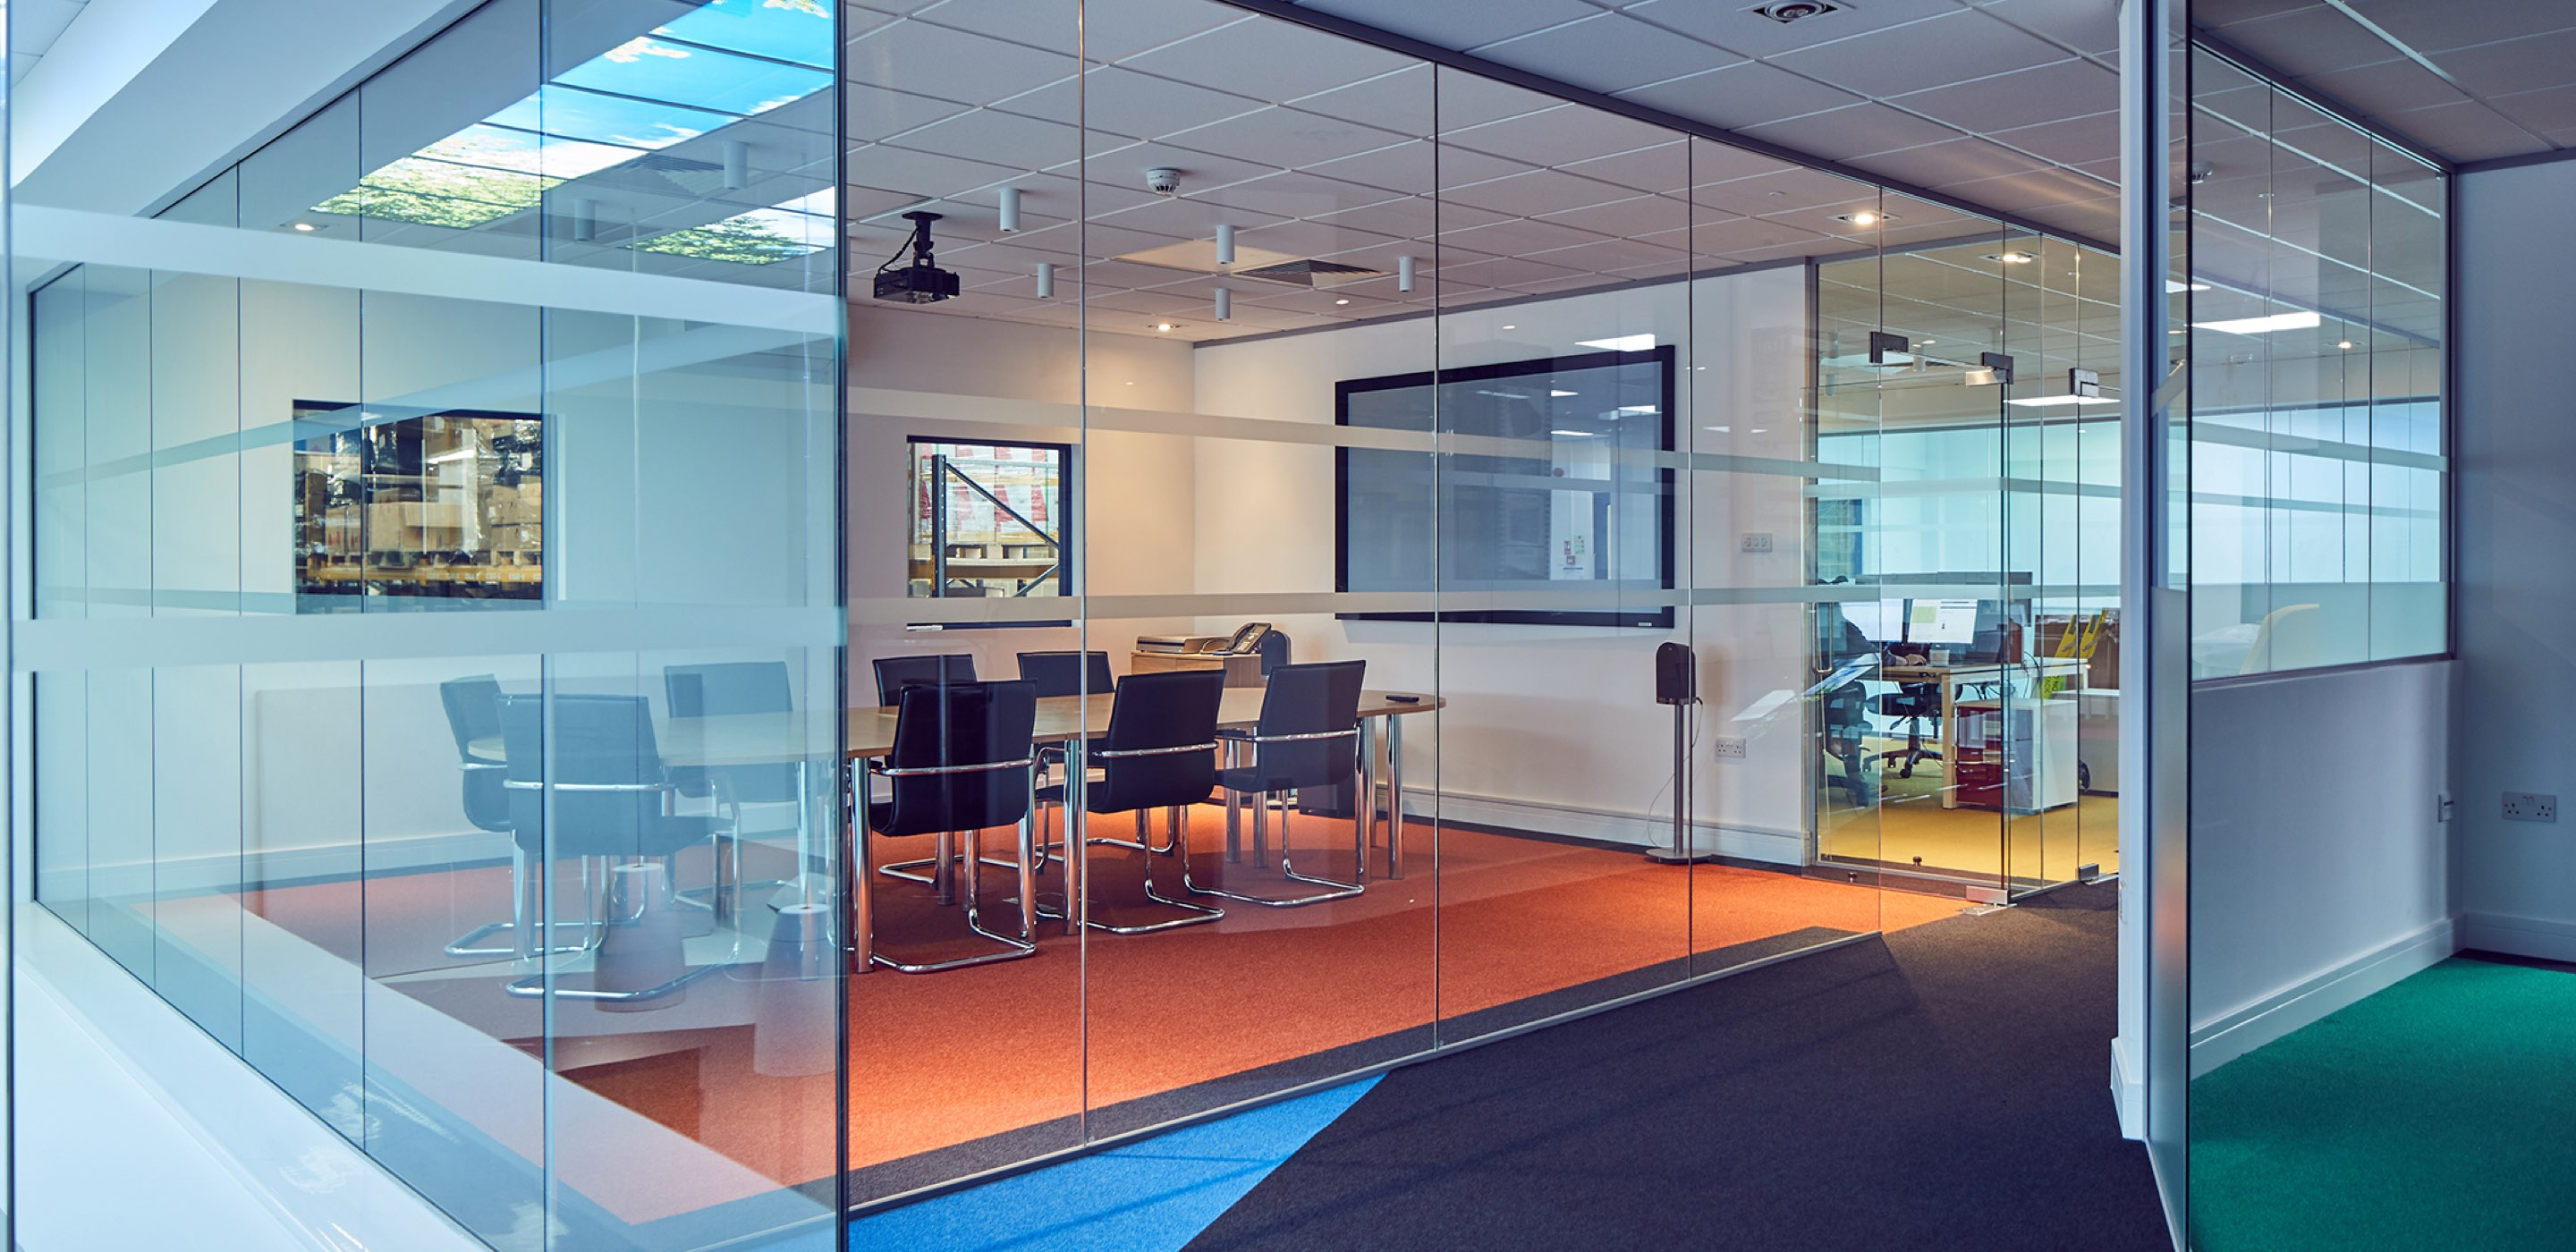 Corporate Interiors Design and Build - Modern office meeting room with glass walls